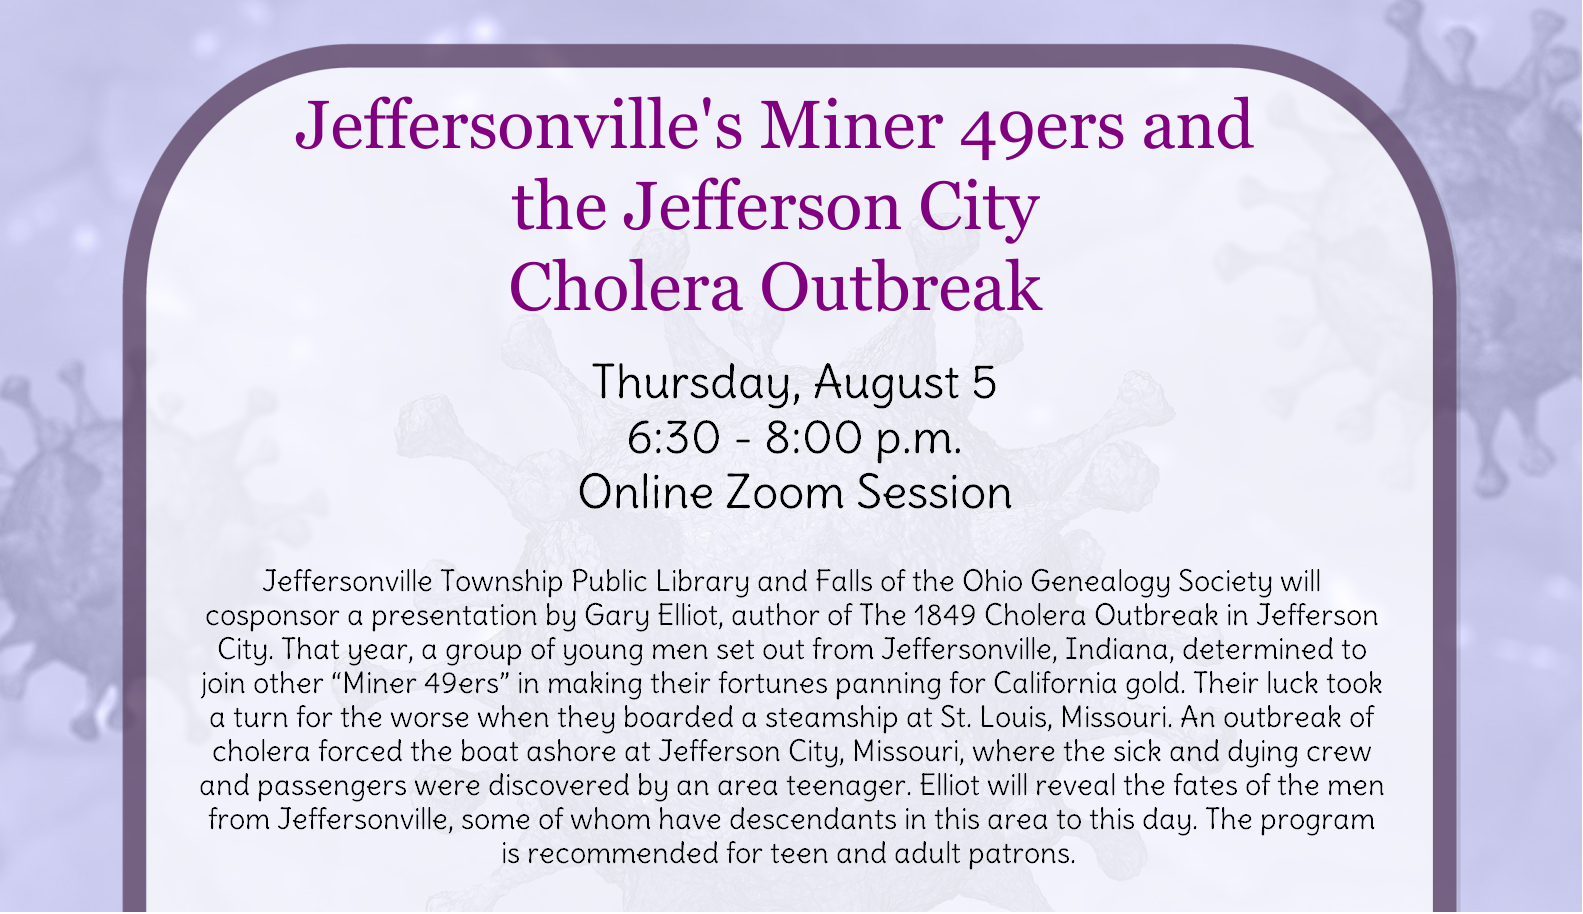 Jeffersonville's Miner 49ers and the Jefferson City Cholera Outbreak